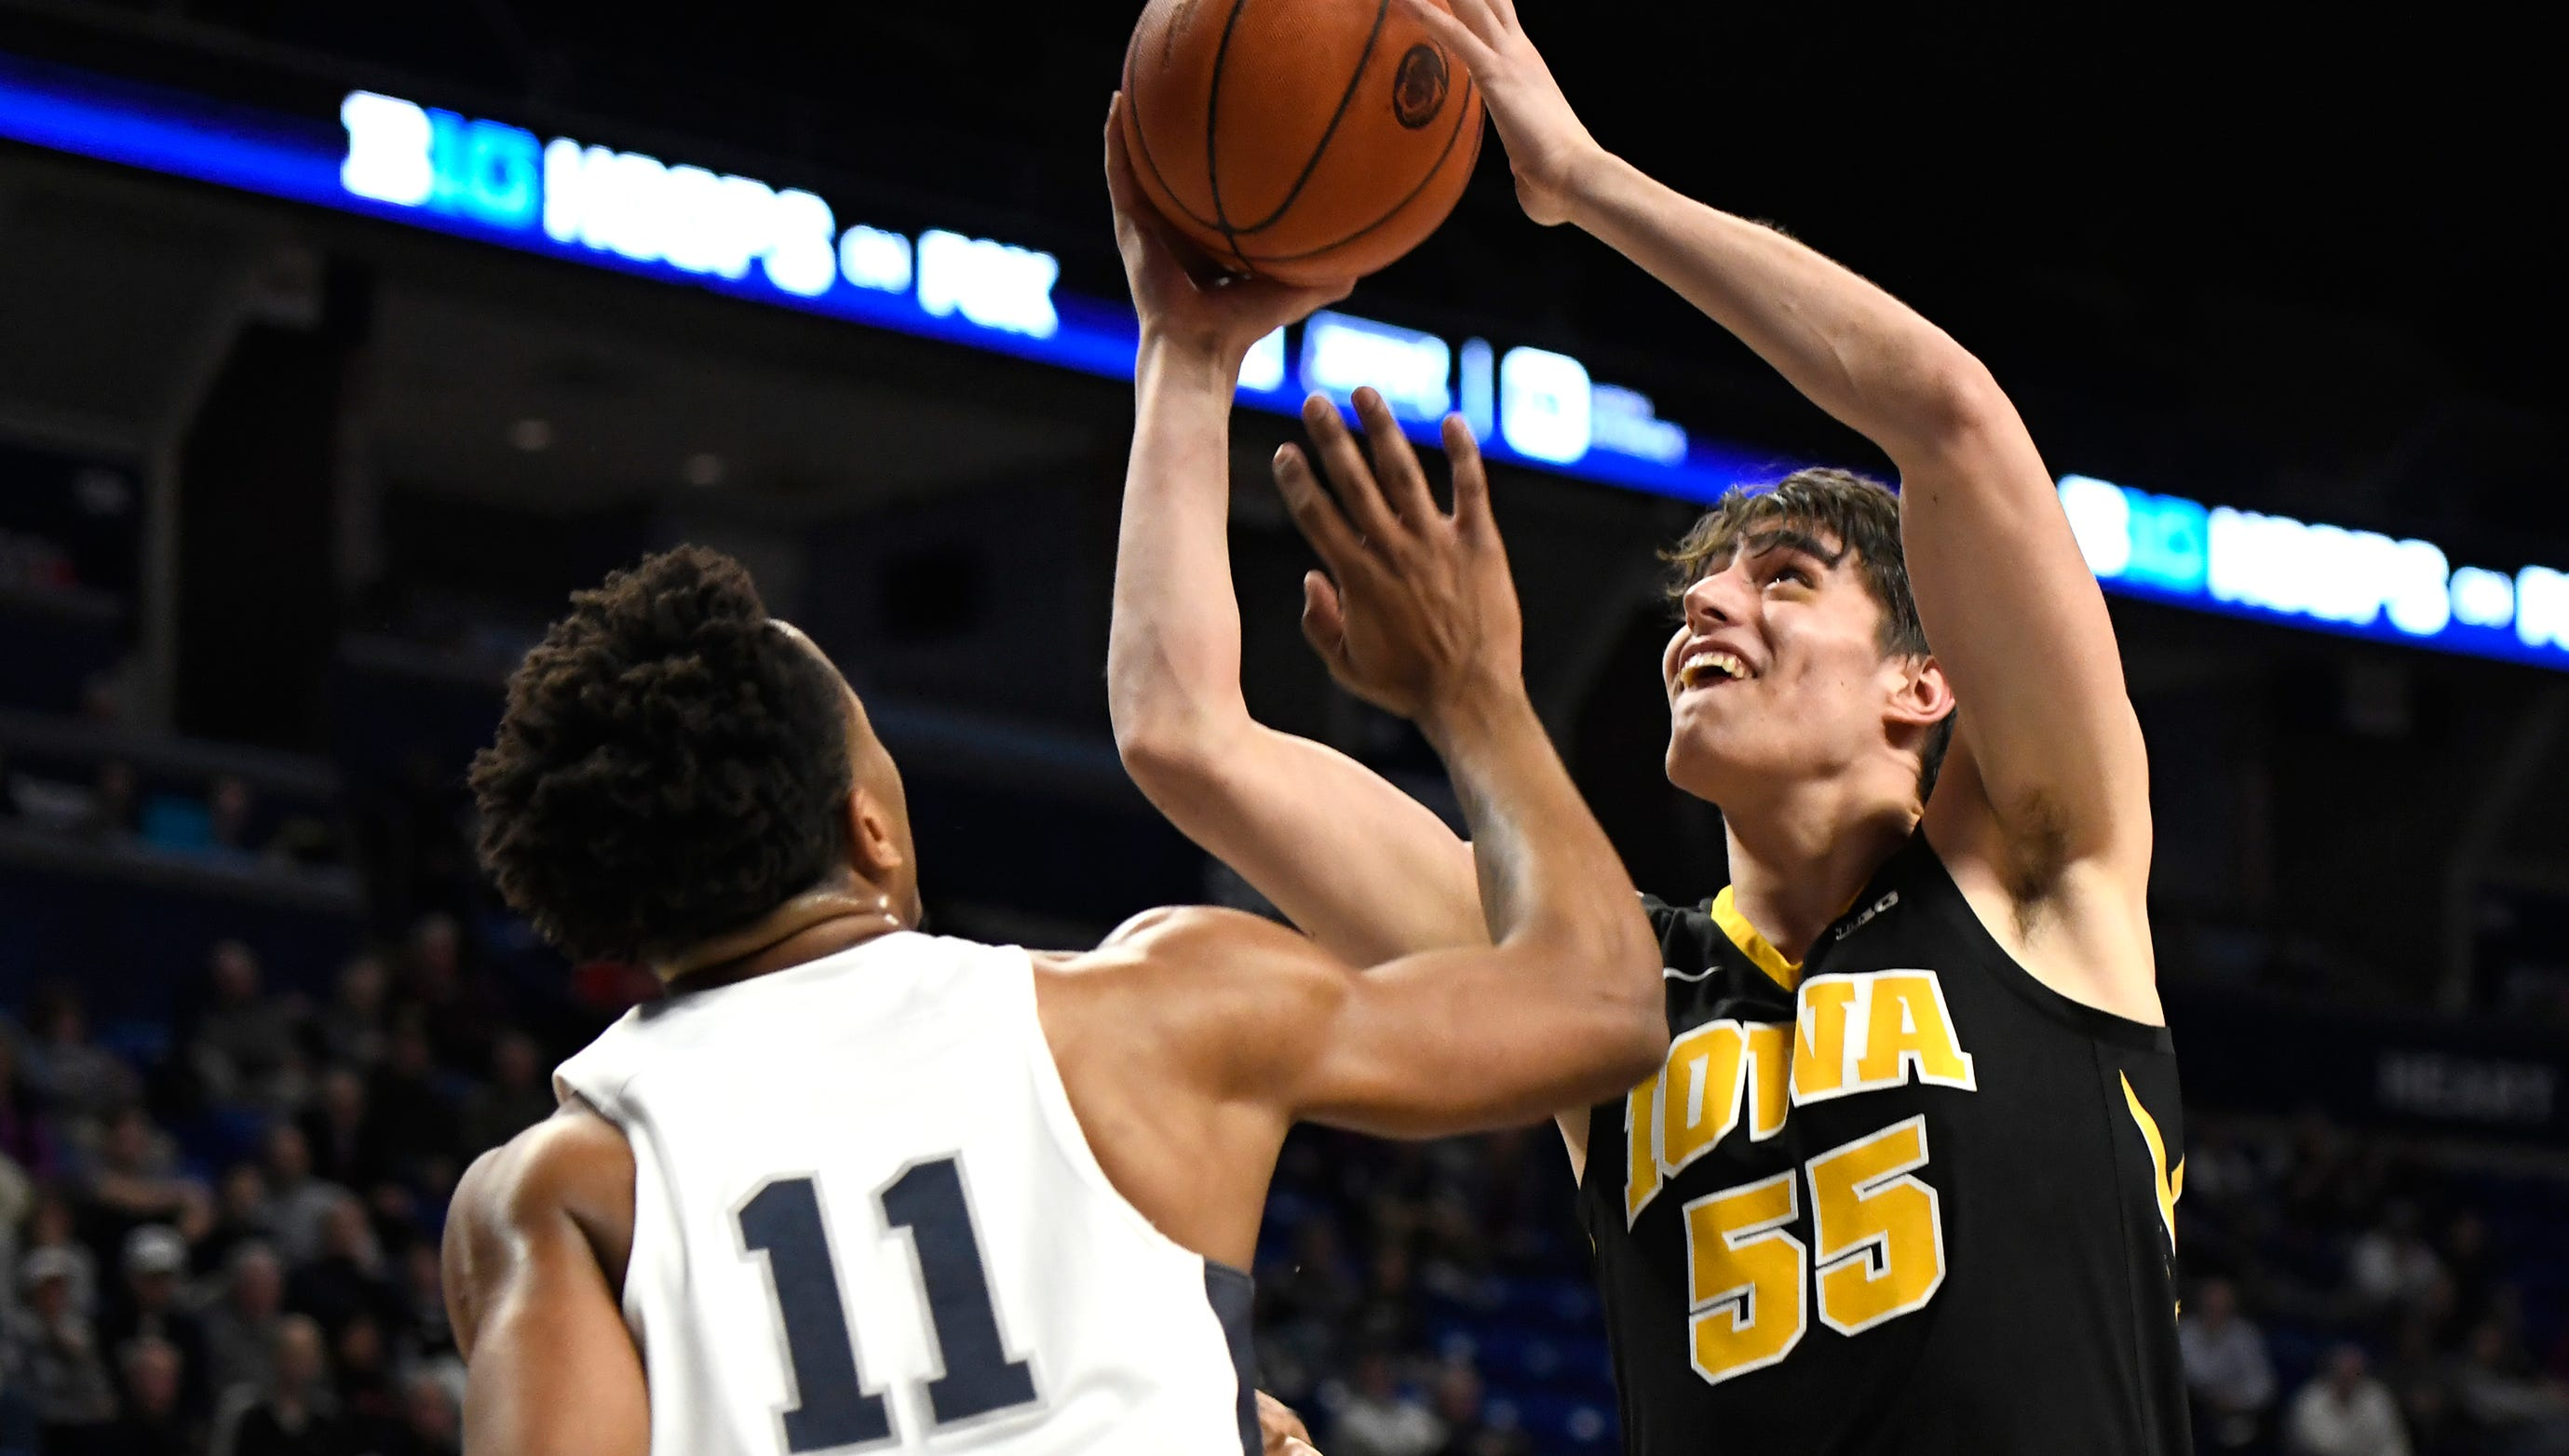 Iowa forward Luka Garza (55) takes a shot over Penn State forward Lamar Stevens (11) during the first half on Wednesday.